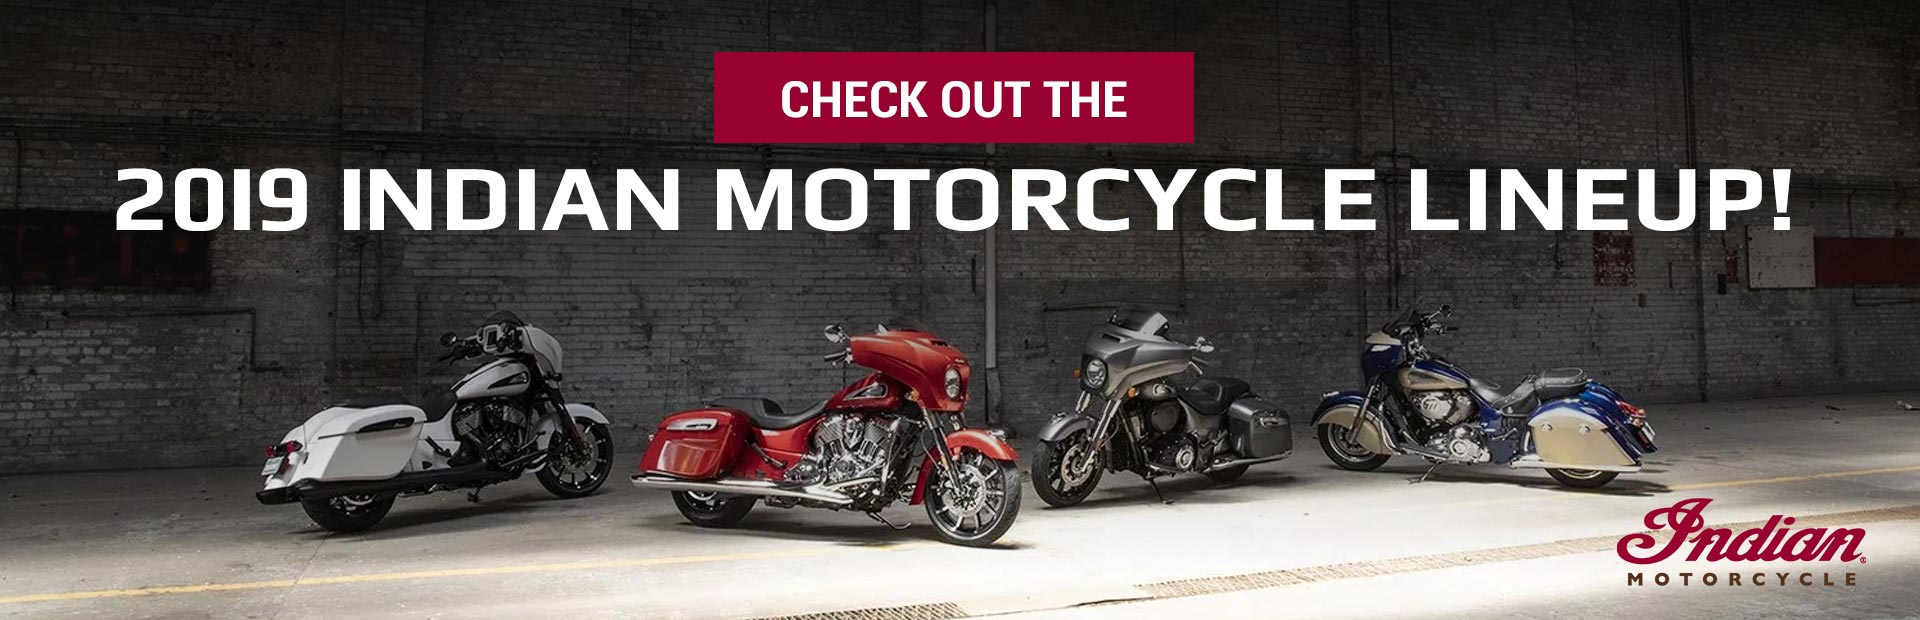 Check Out the 2019 Indian Motorcycle Lineup